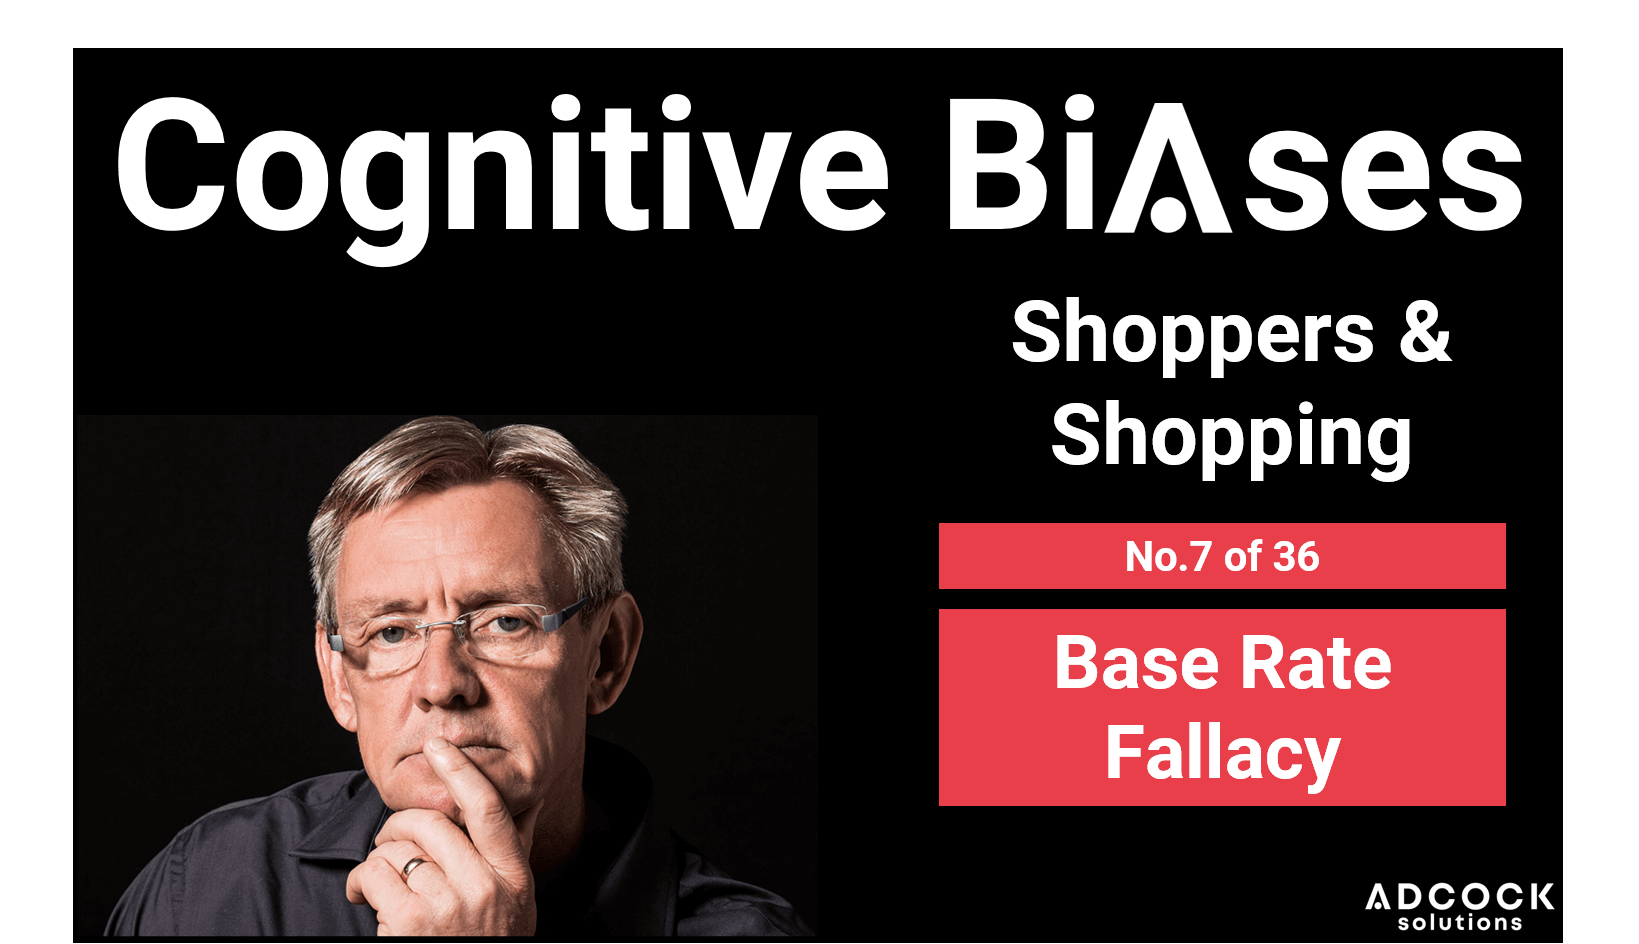 No.8 of 36 Base Rate Fallacy